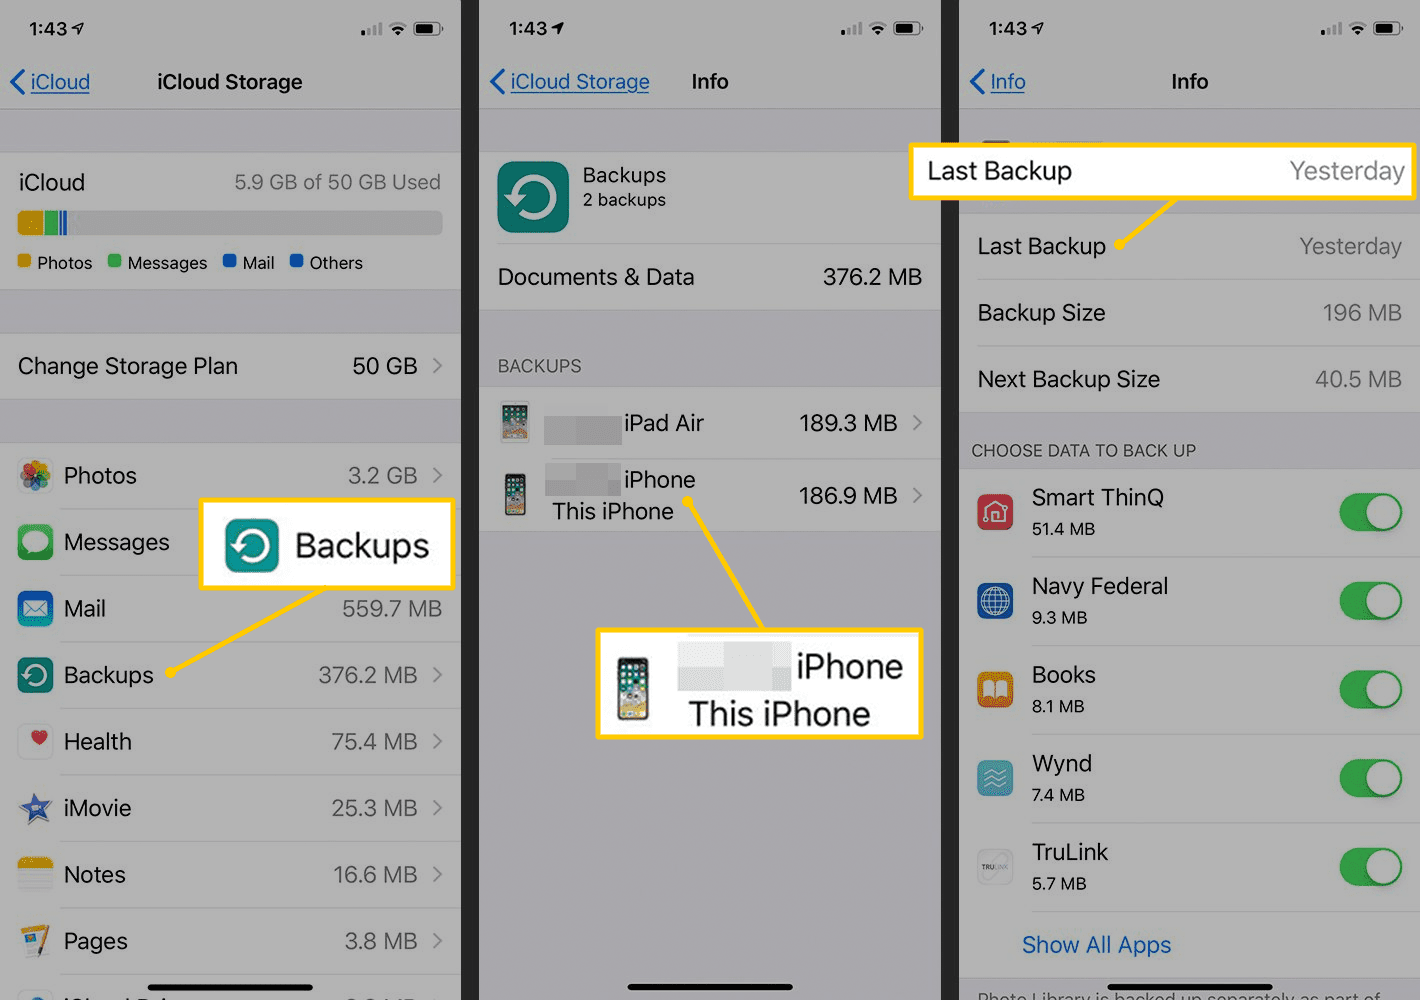 Backups, This iPhone, Last Backup in iOS Settings